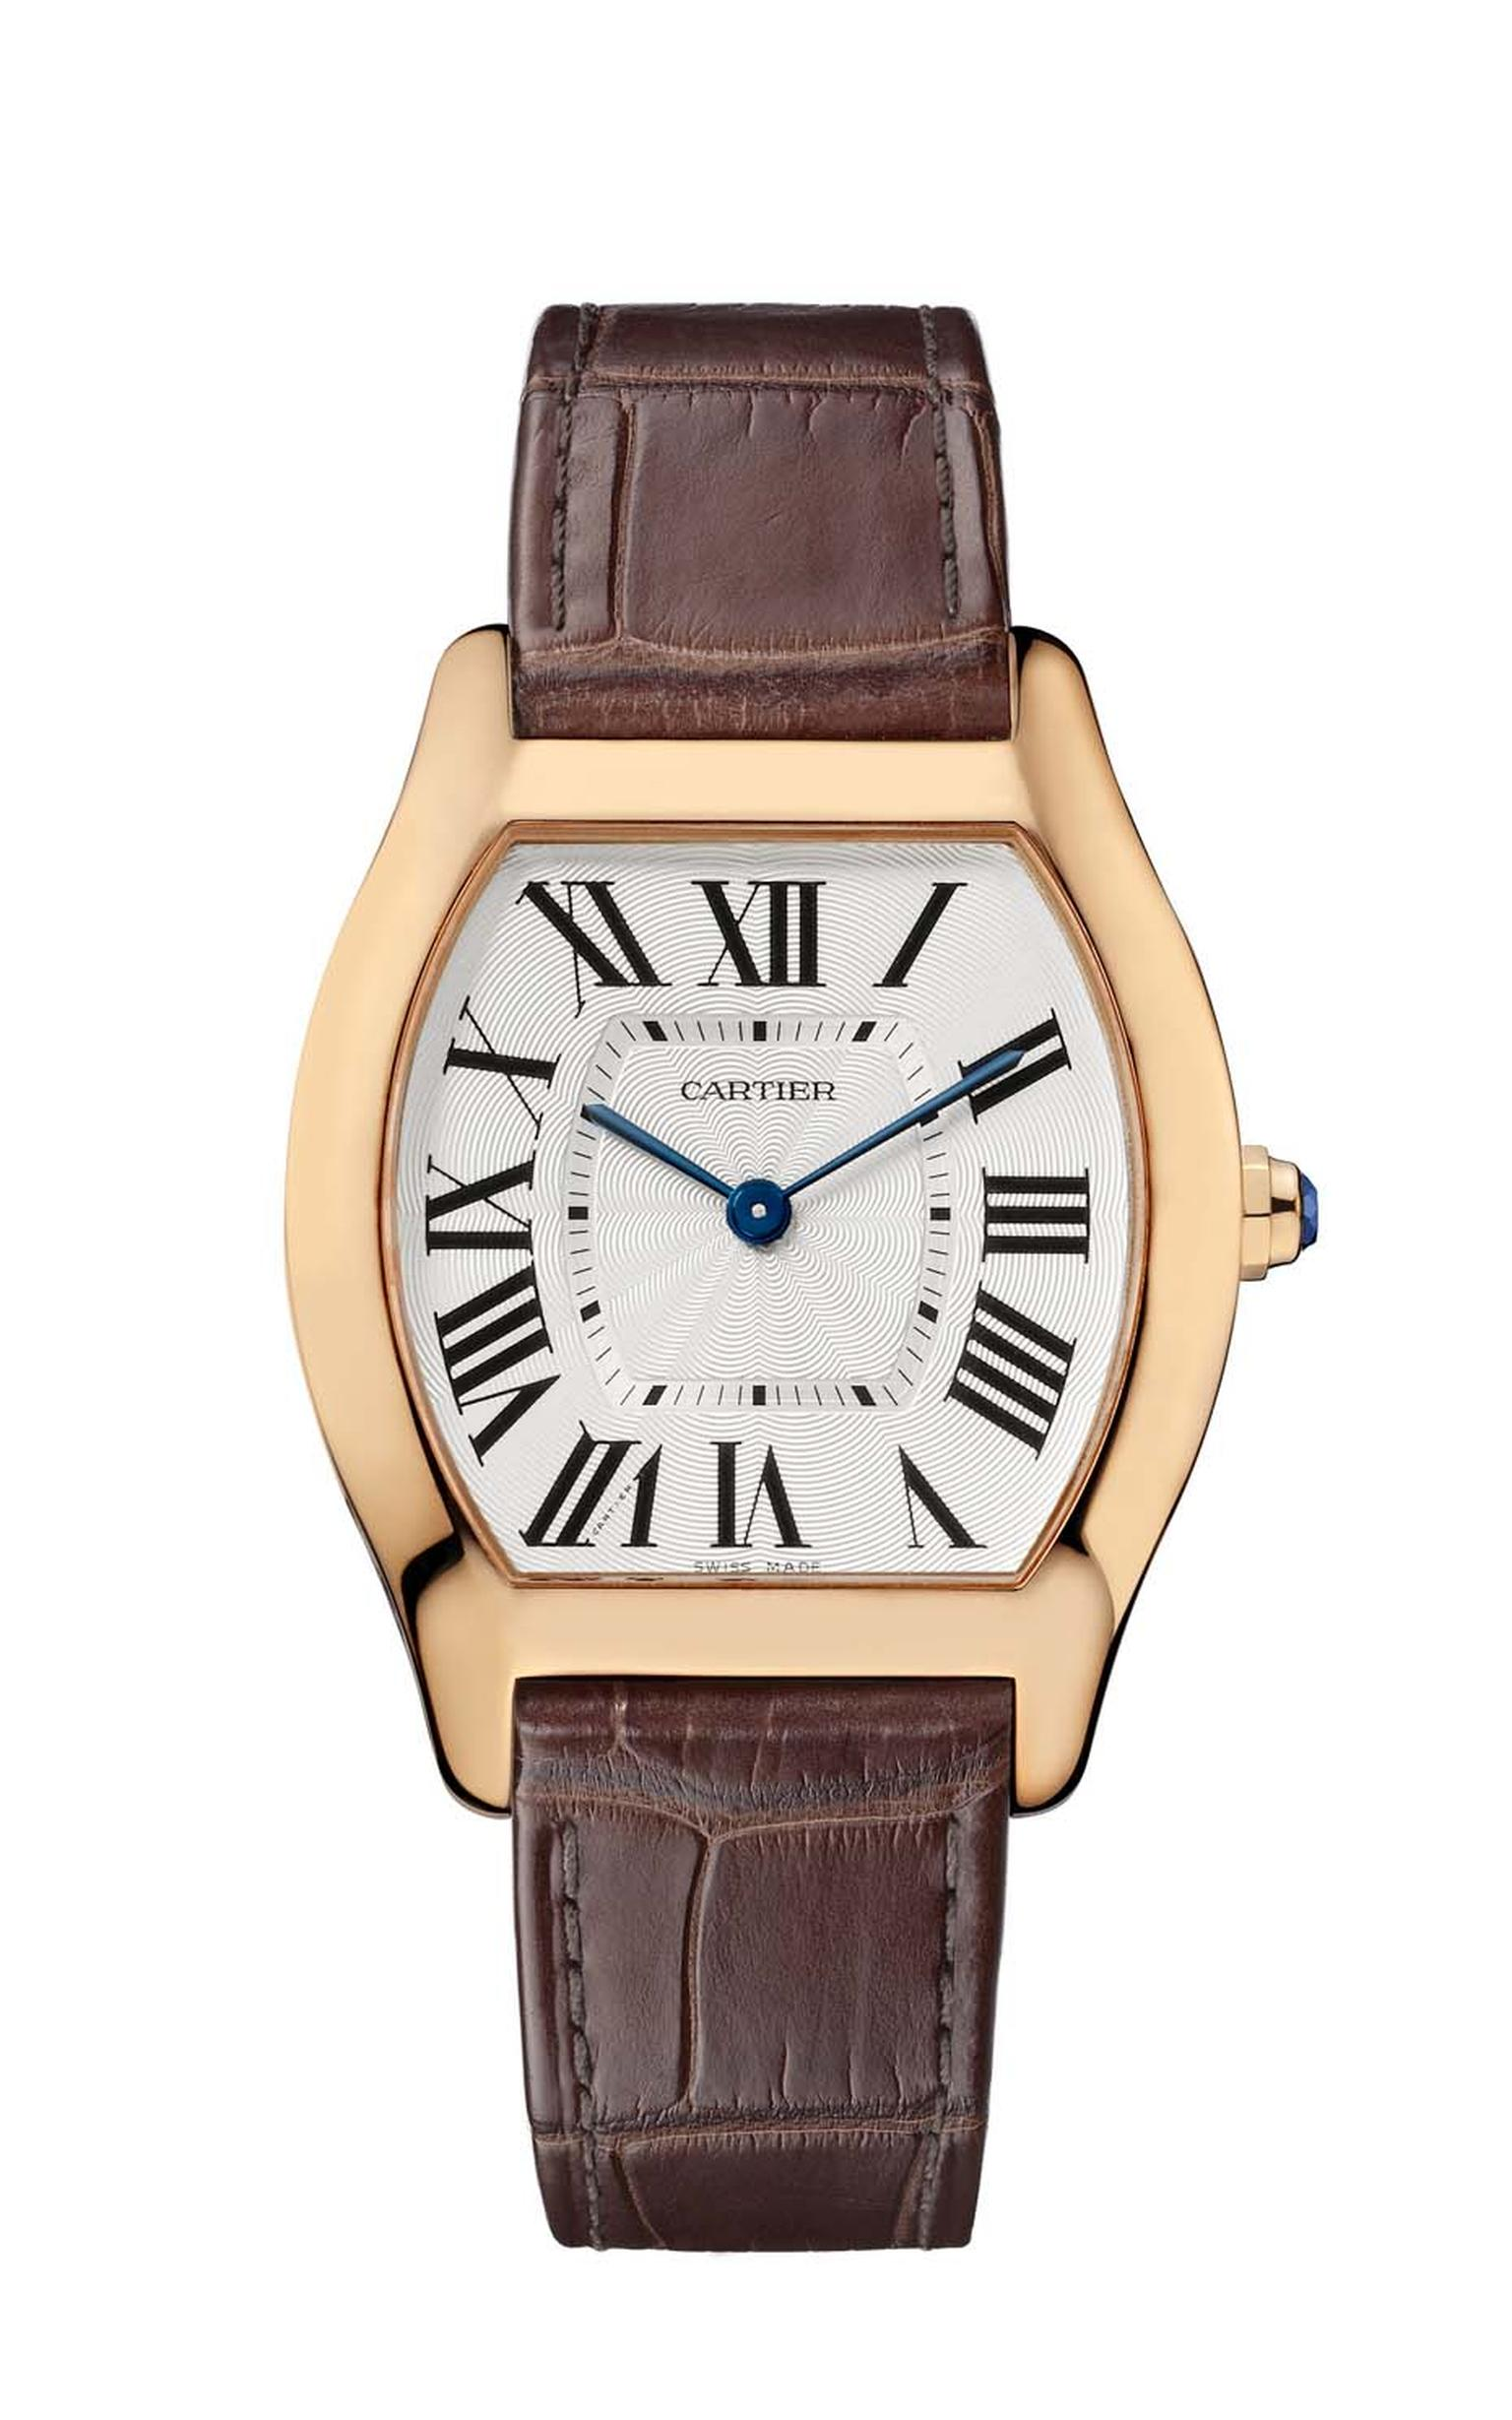 Cartier's Tortue watch medium model in pink gold with an alligator skin strap.